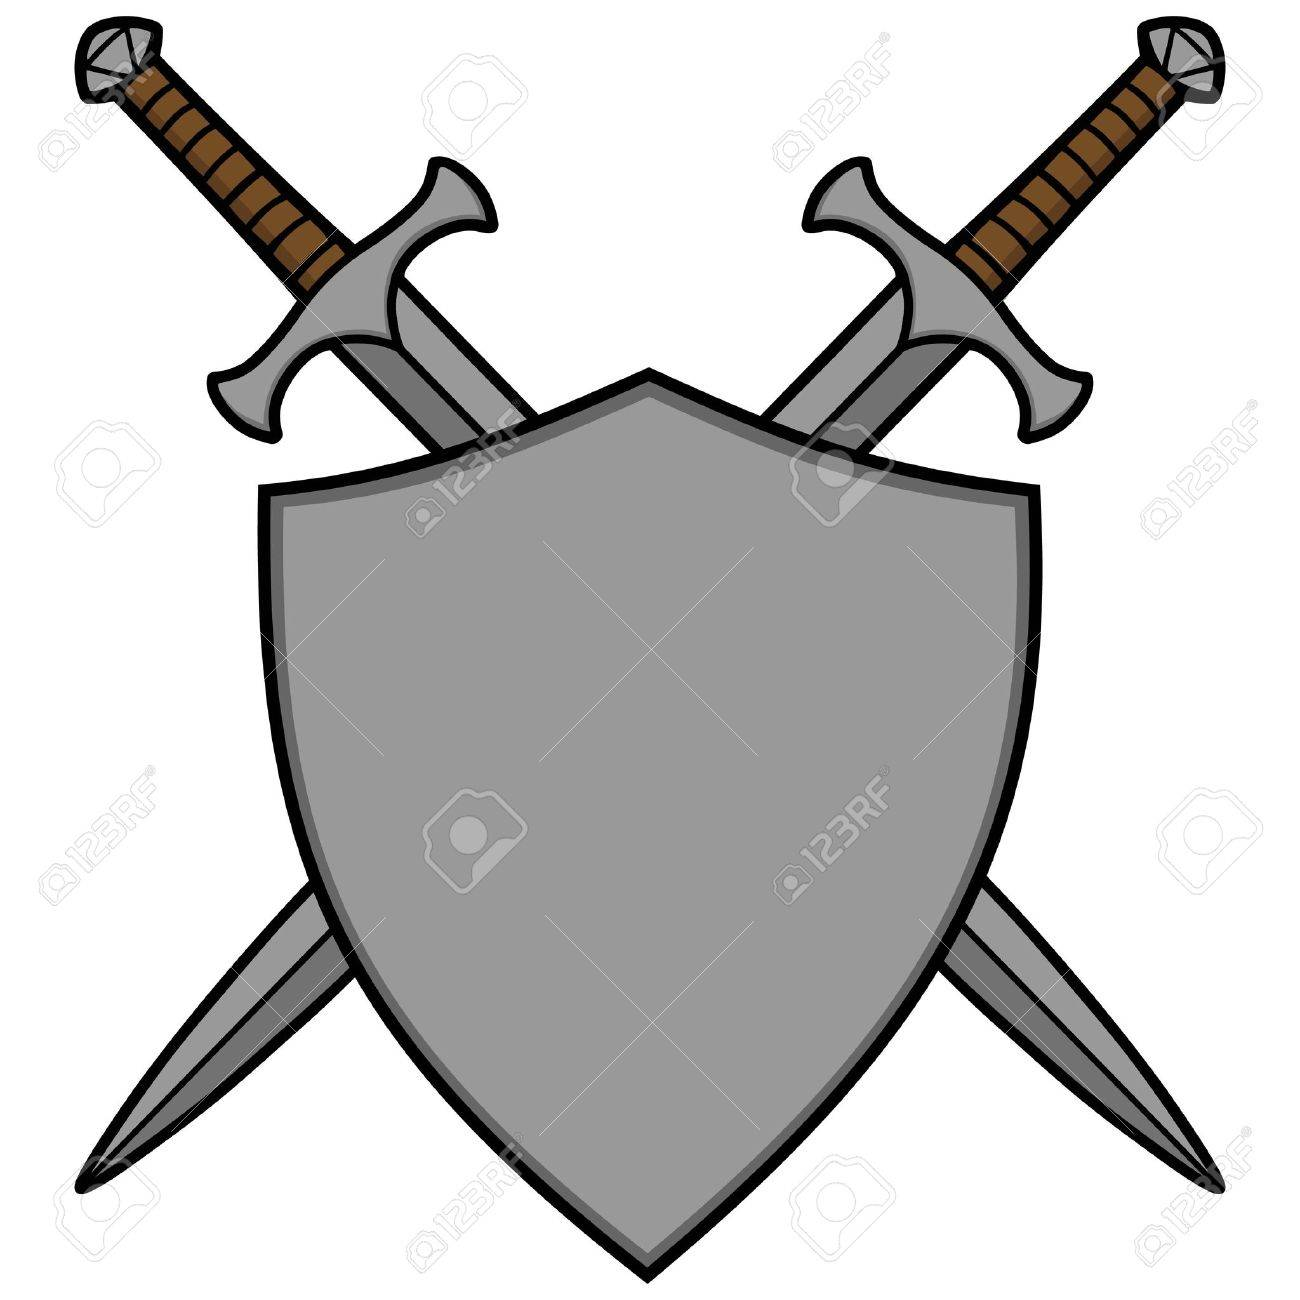 Crossed Swords and Shield.